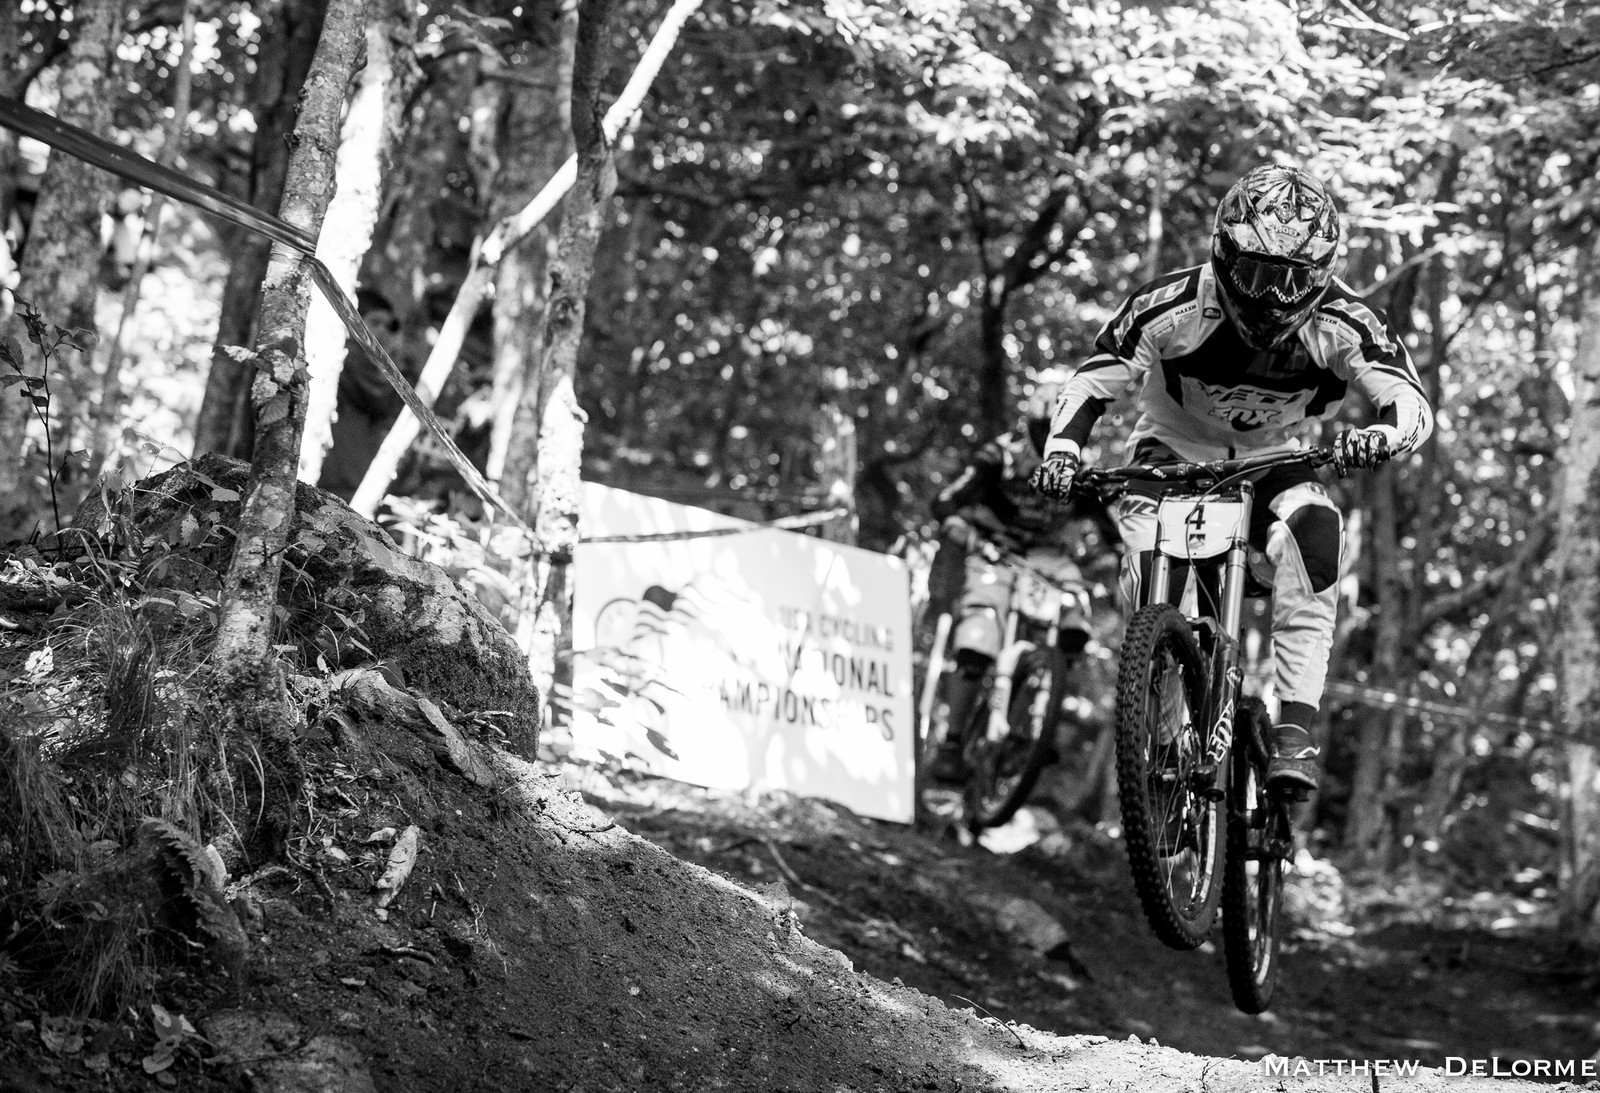 Eliot Jackson - U.S National Championship Dual Slalom Finals and DH Qualifying - Mountain Biking Pictures - Vital MTB